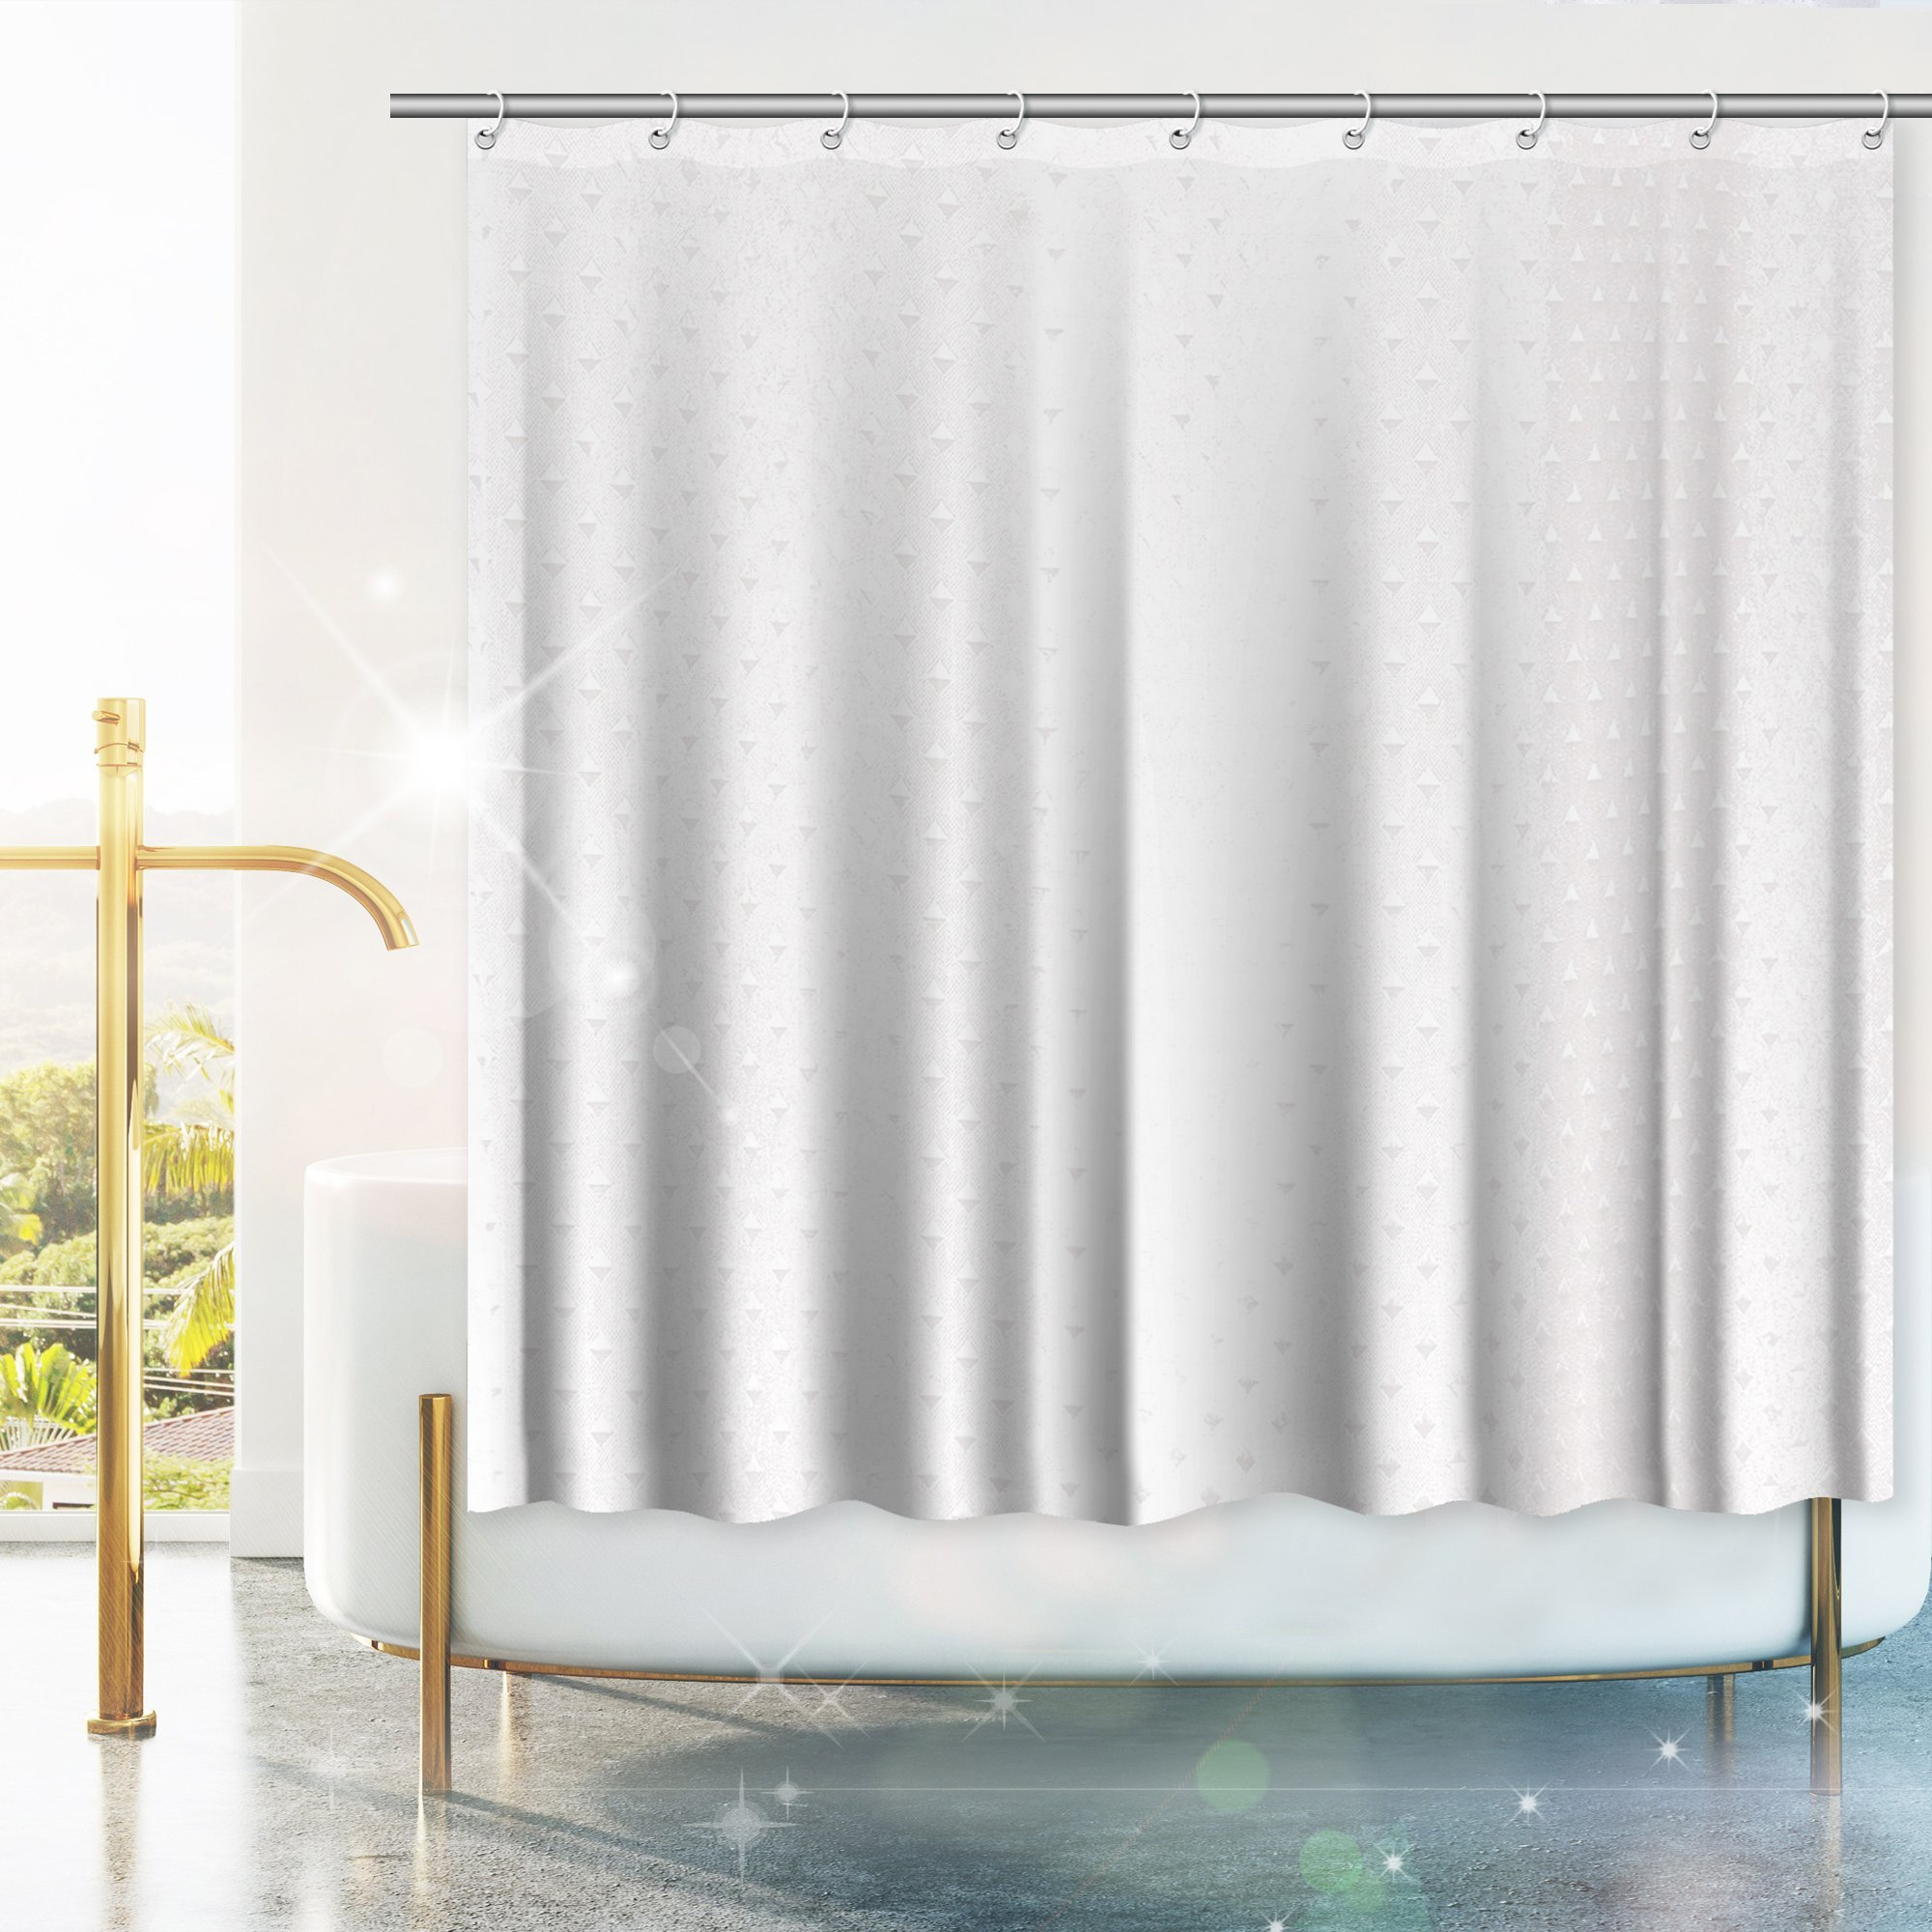 """White Shower Curtain Liner, Diamond Pattern –With 2 Free Bar Soap. Mold and Mildew Resistant, Waterproof, Antibacterial & Eco Friendly – Standard Size 71"""" x 71"""" Hotel Quality Shower Curtain Liner."""